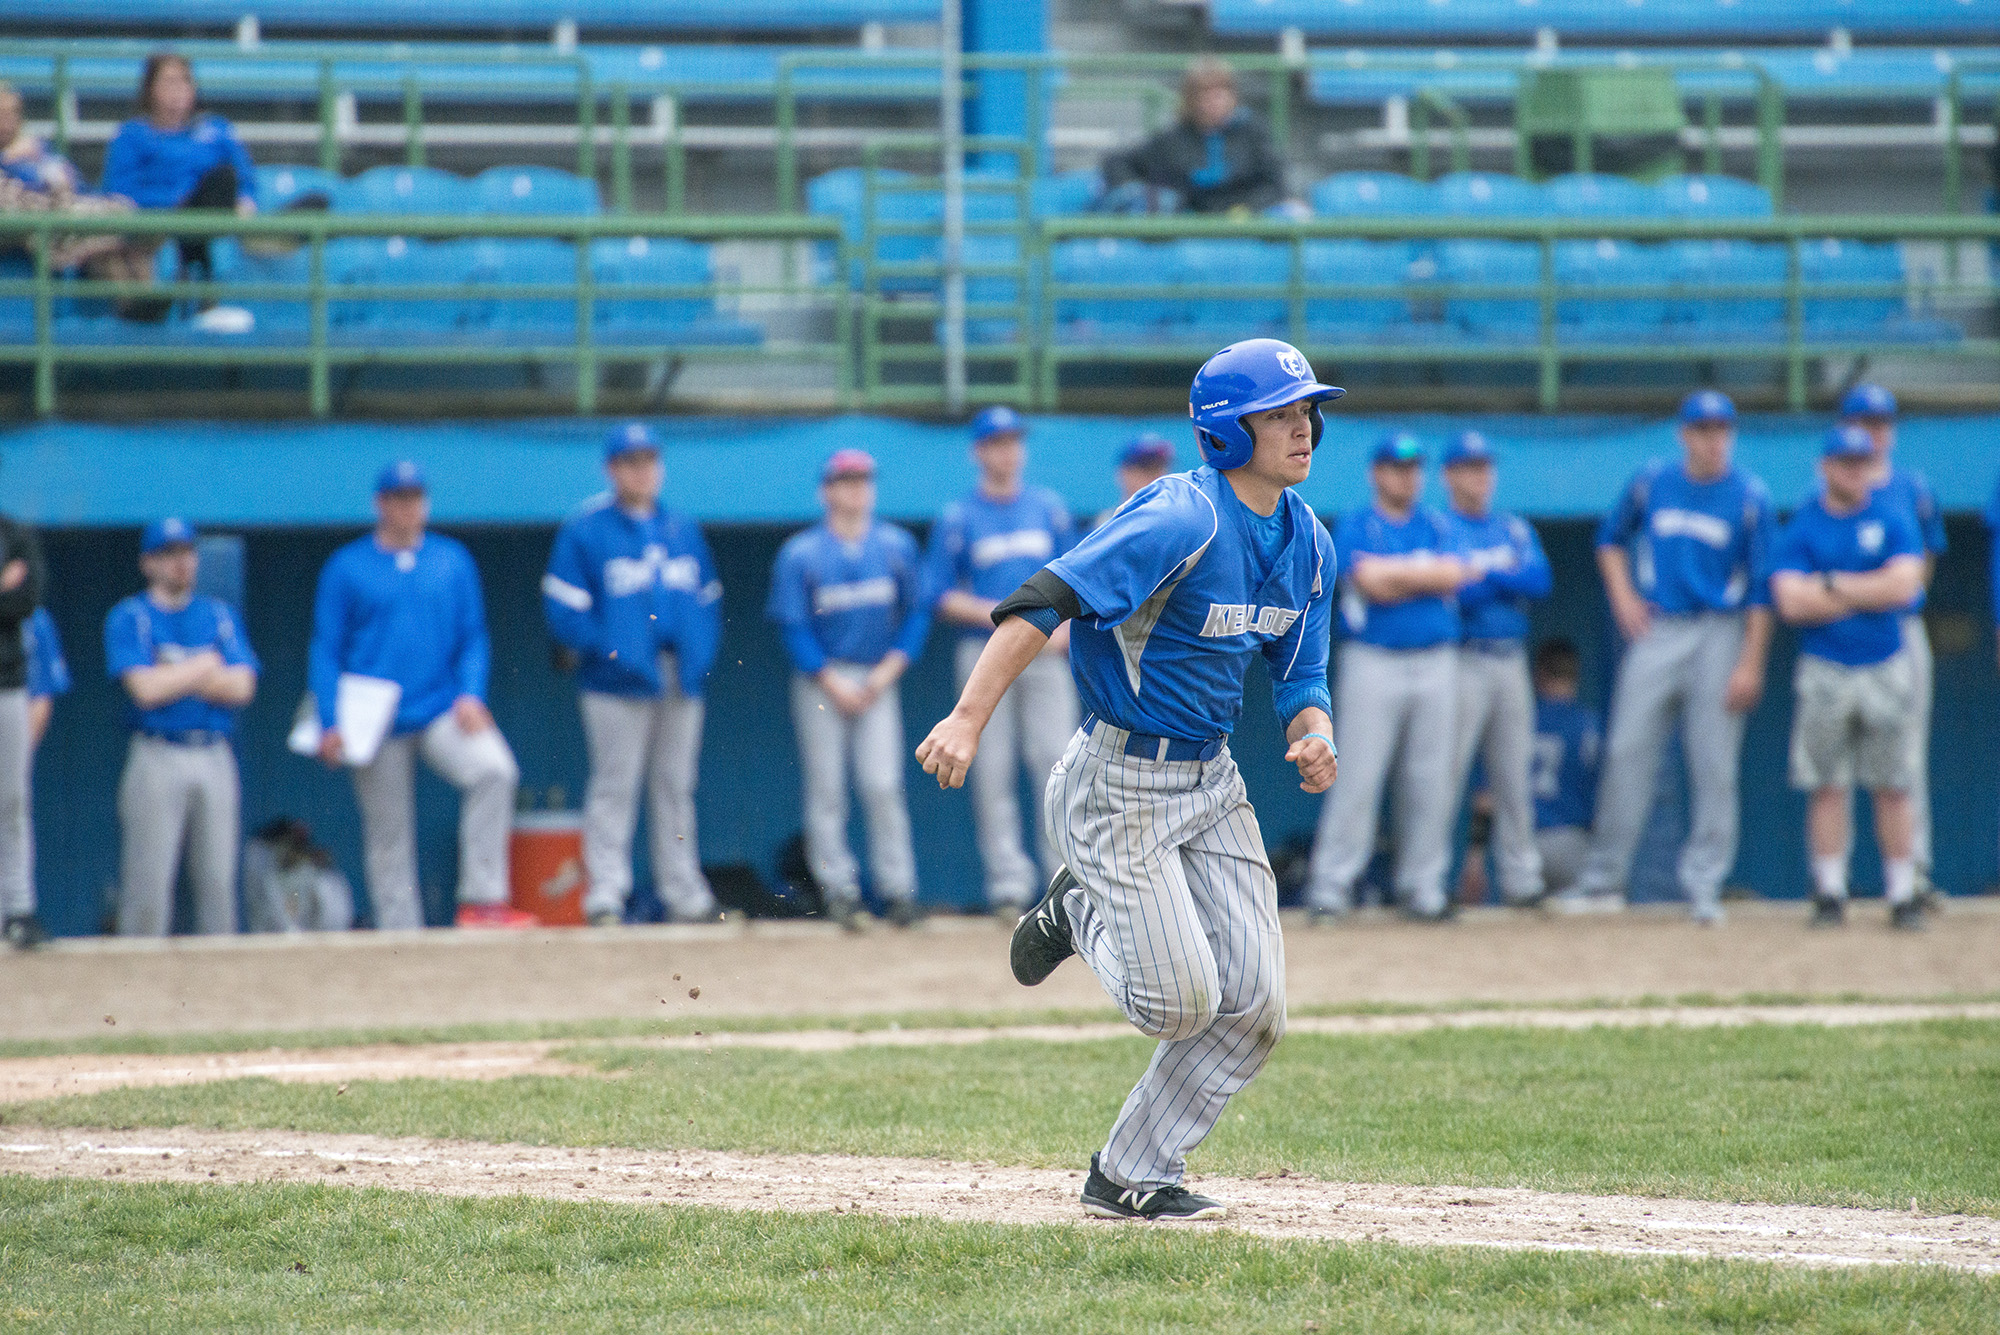 A KCC baseball player runs to first after hitting the ball during a home game.